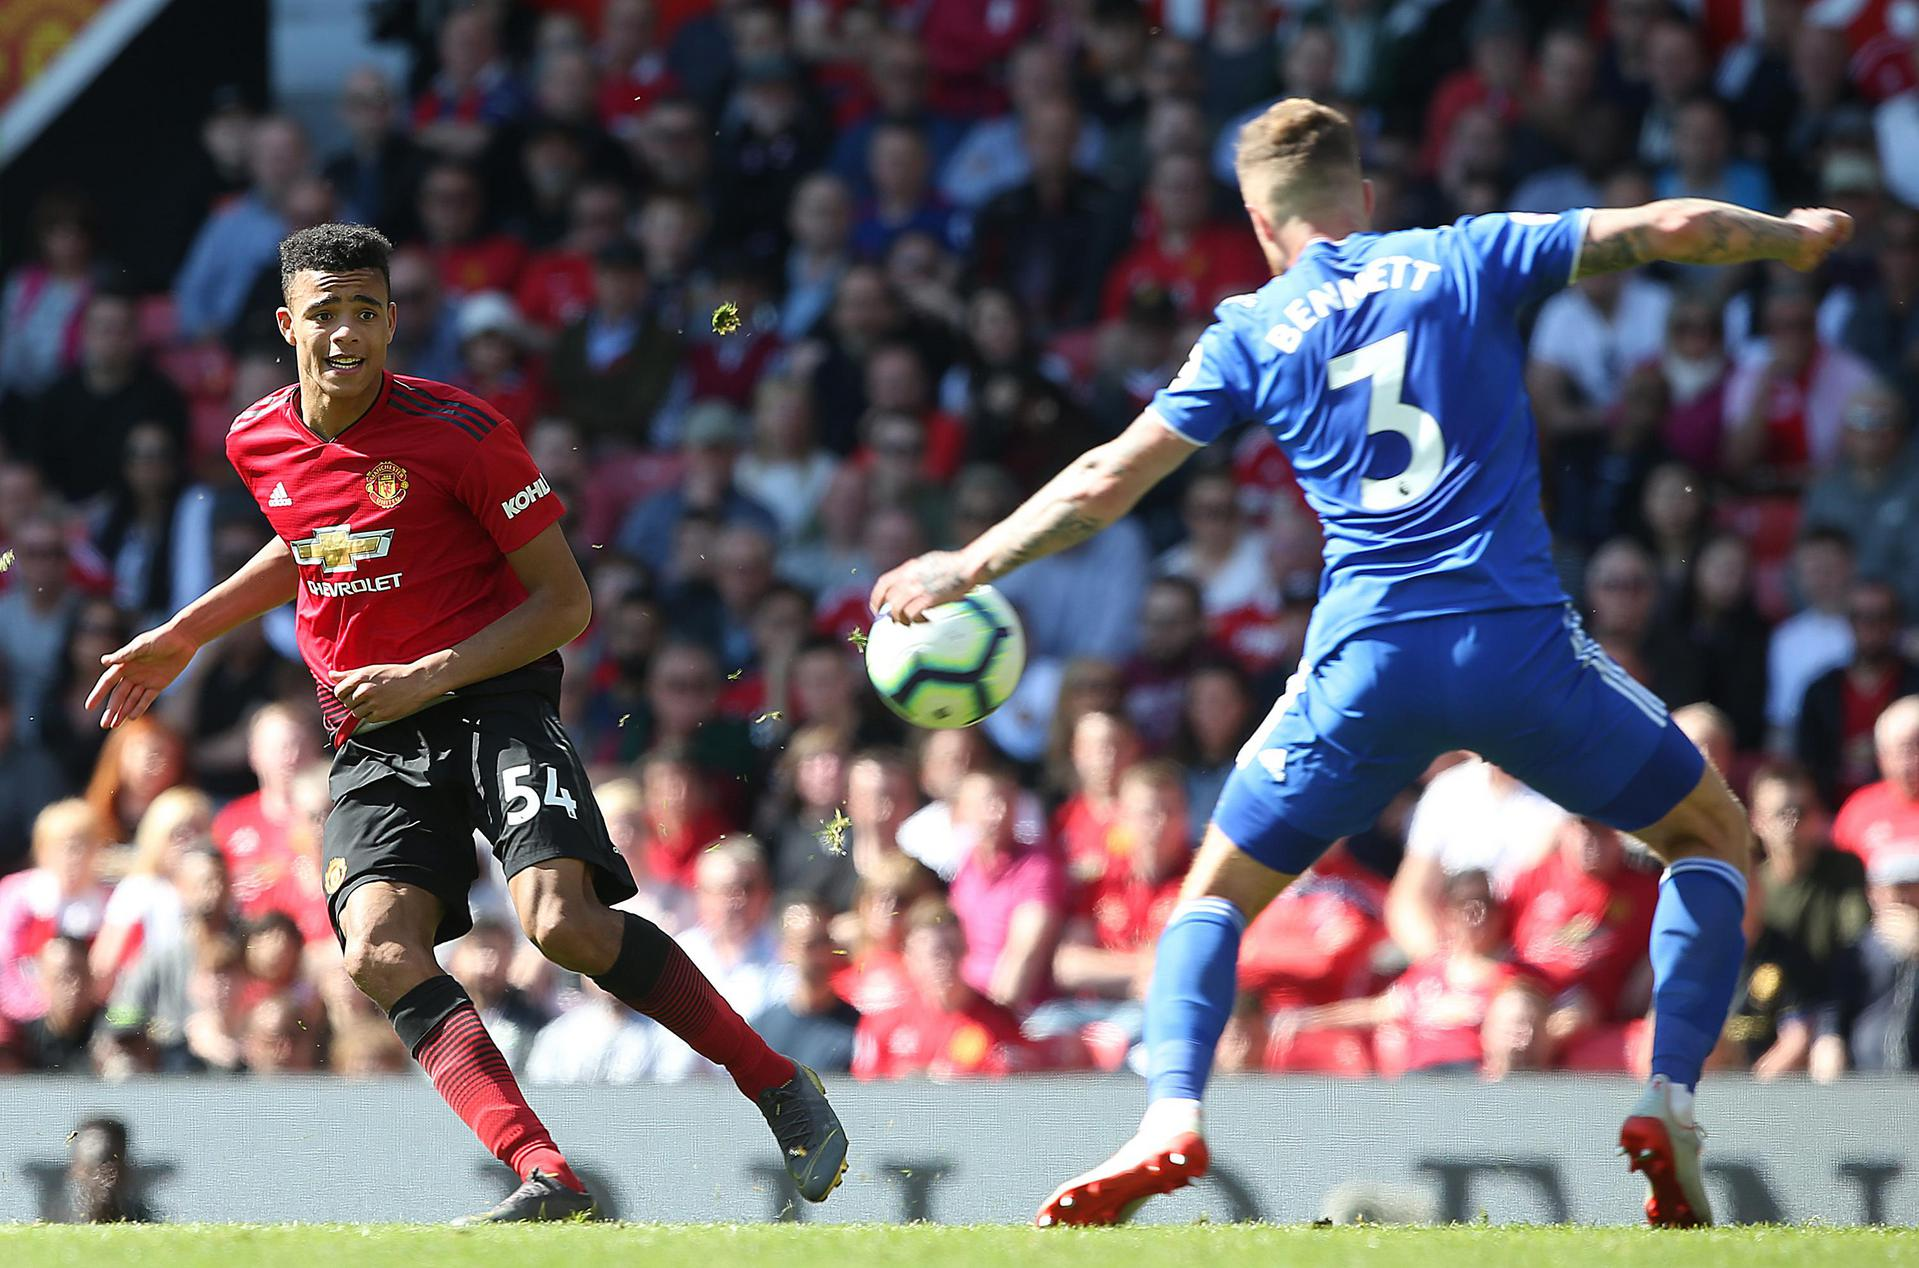 Mason Greenwood was a bright spot for United on the final day of the season